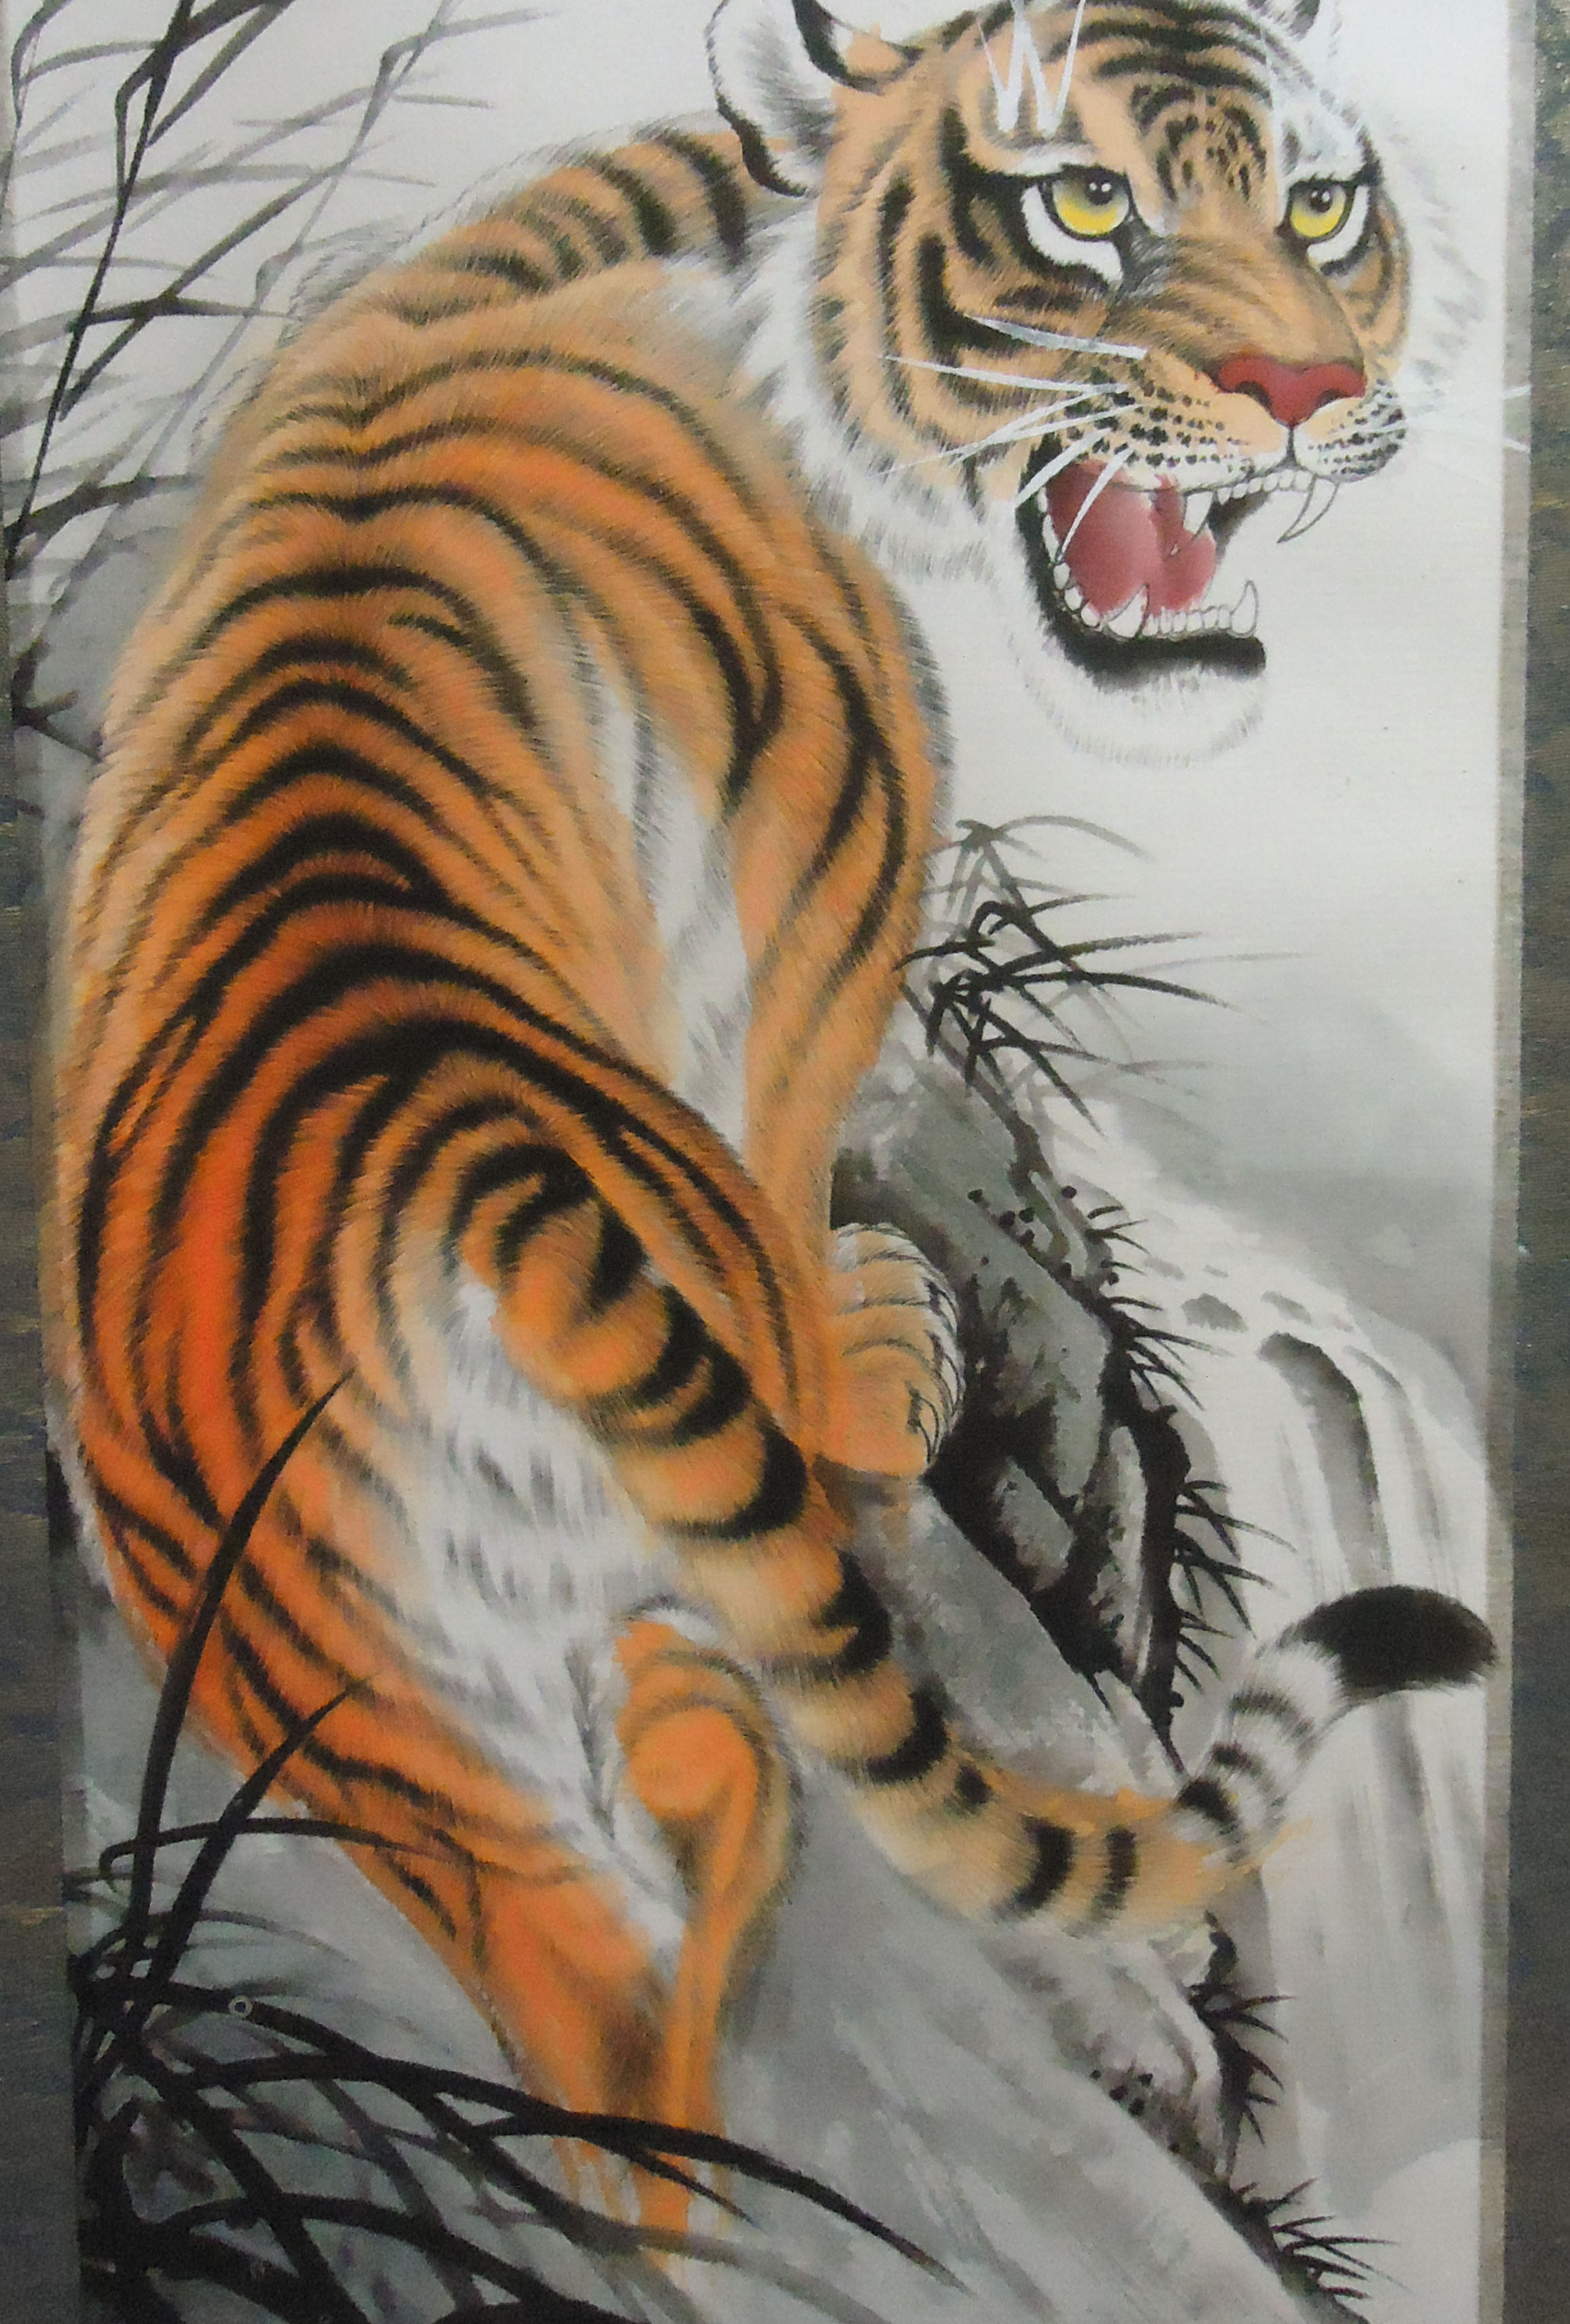 Chinese Style Tiger Drawing Image Free Stock Photo